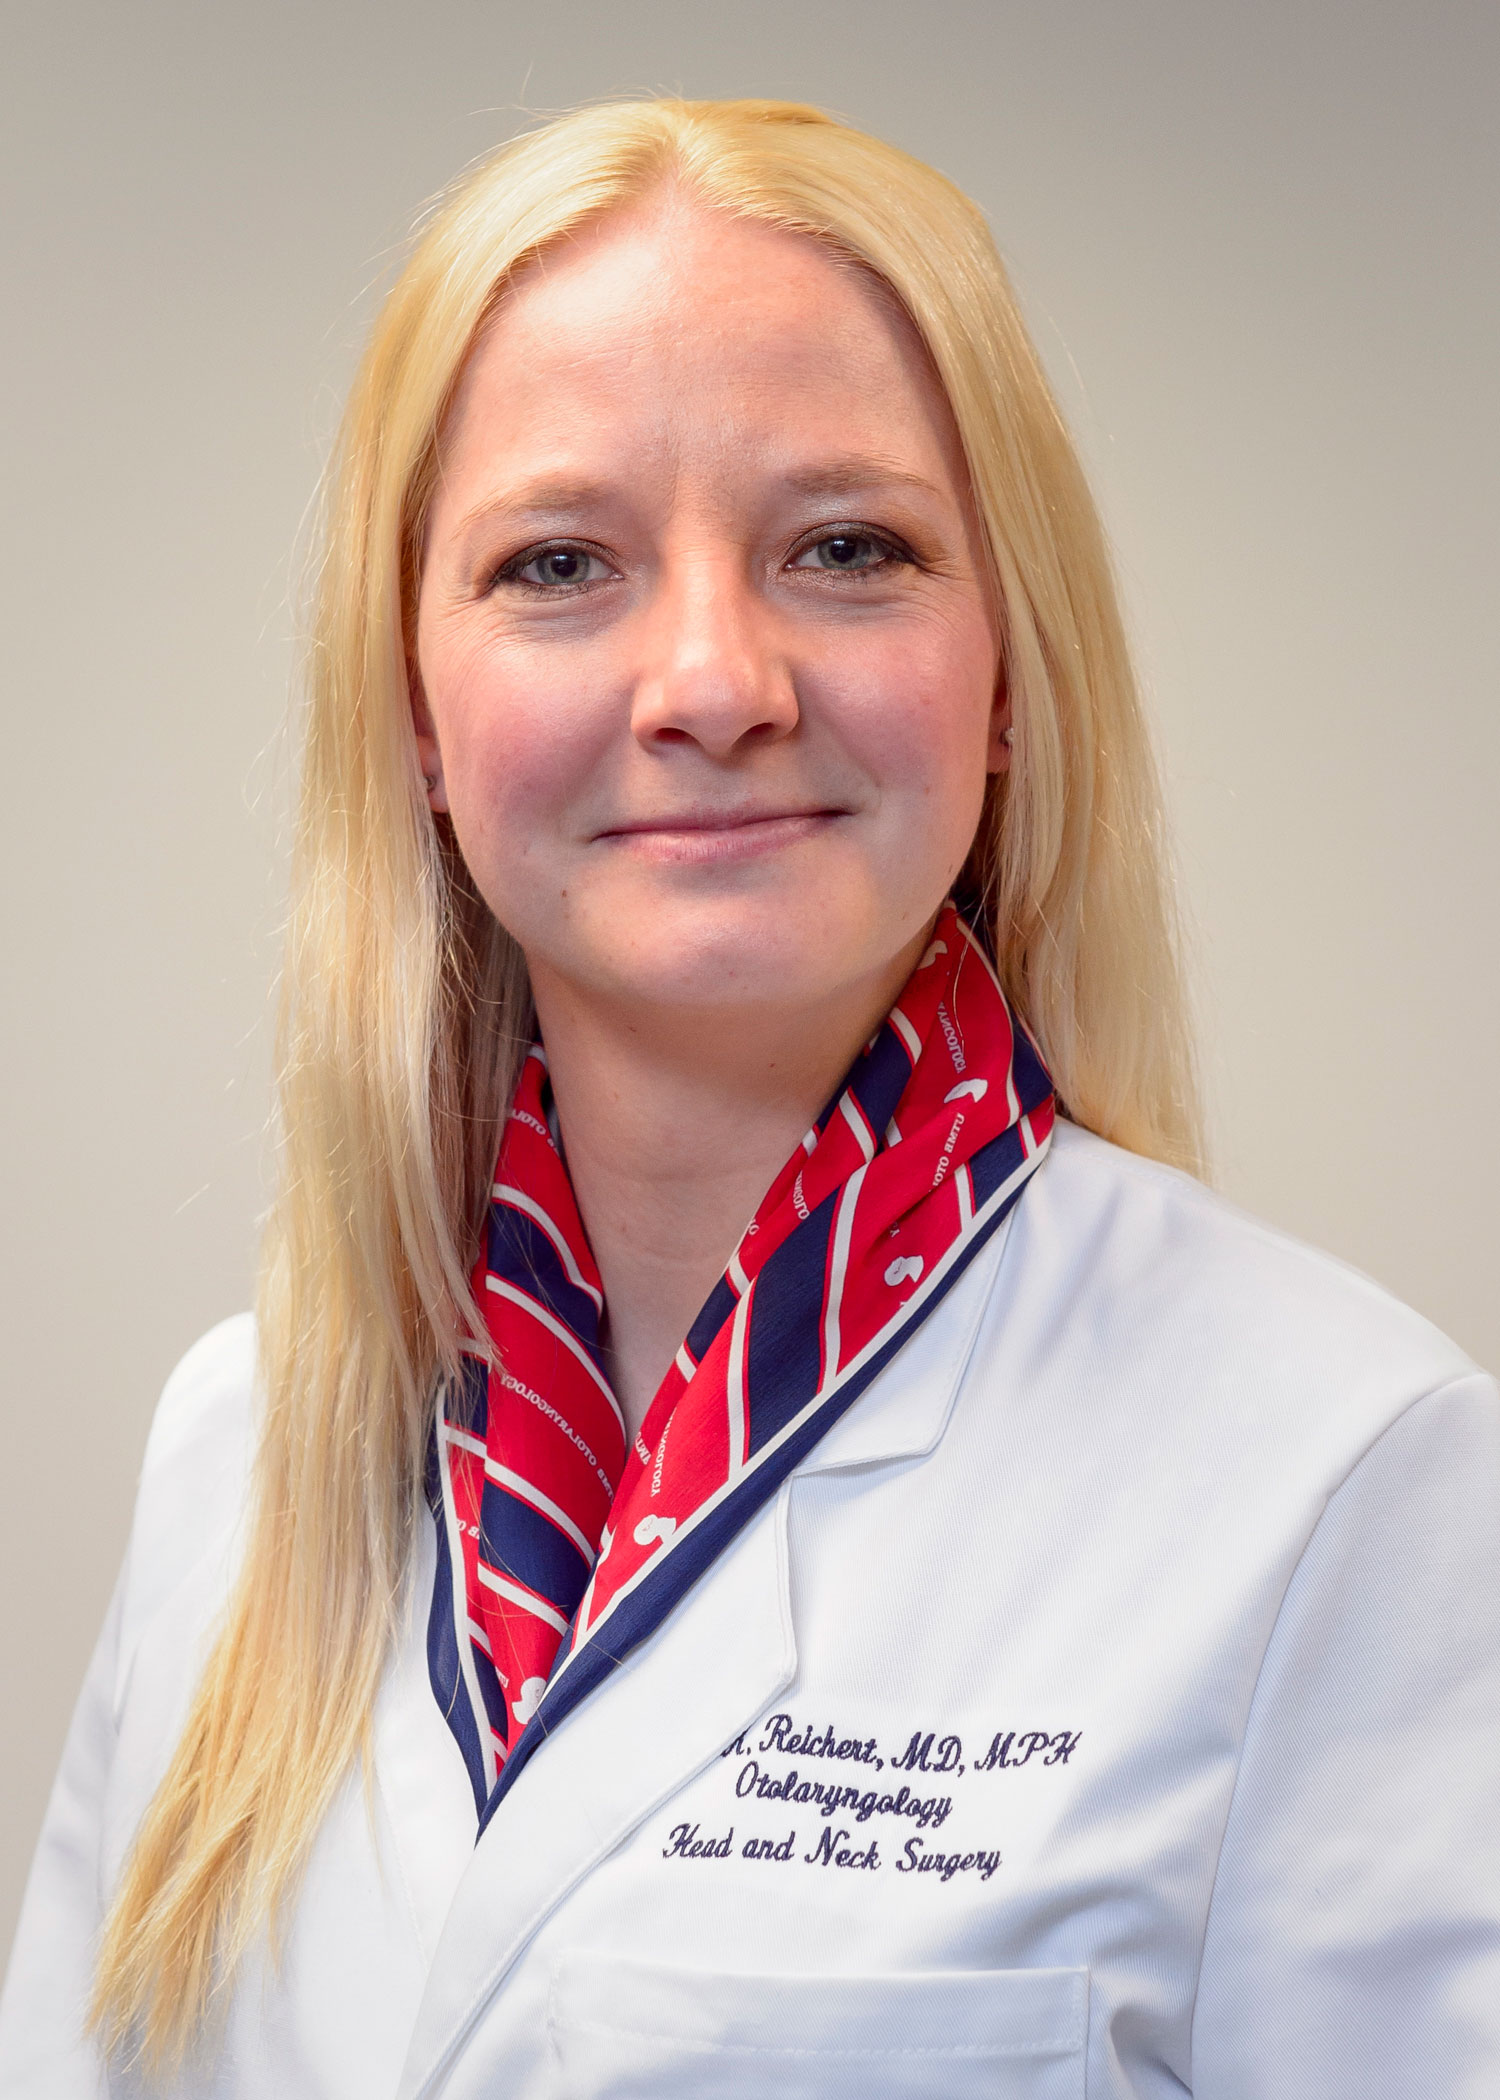 Lara Reichert, MD